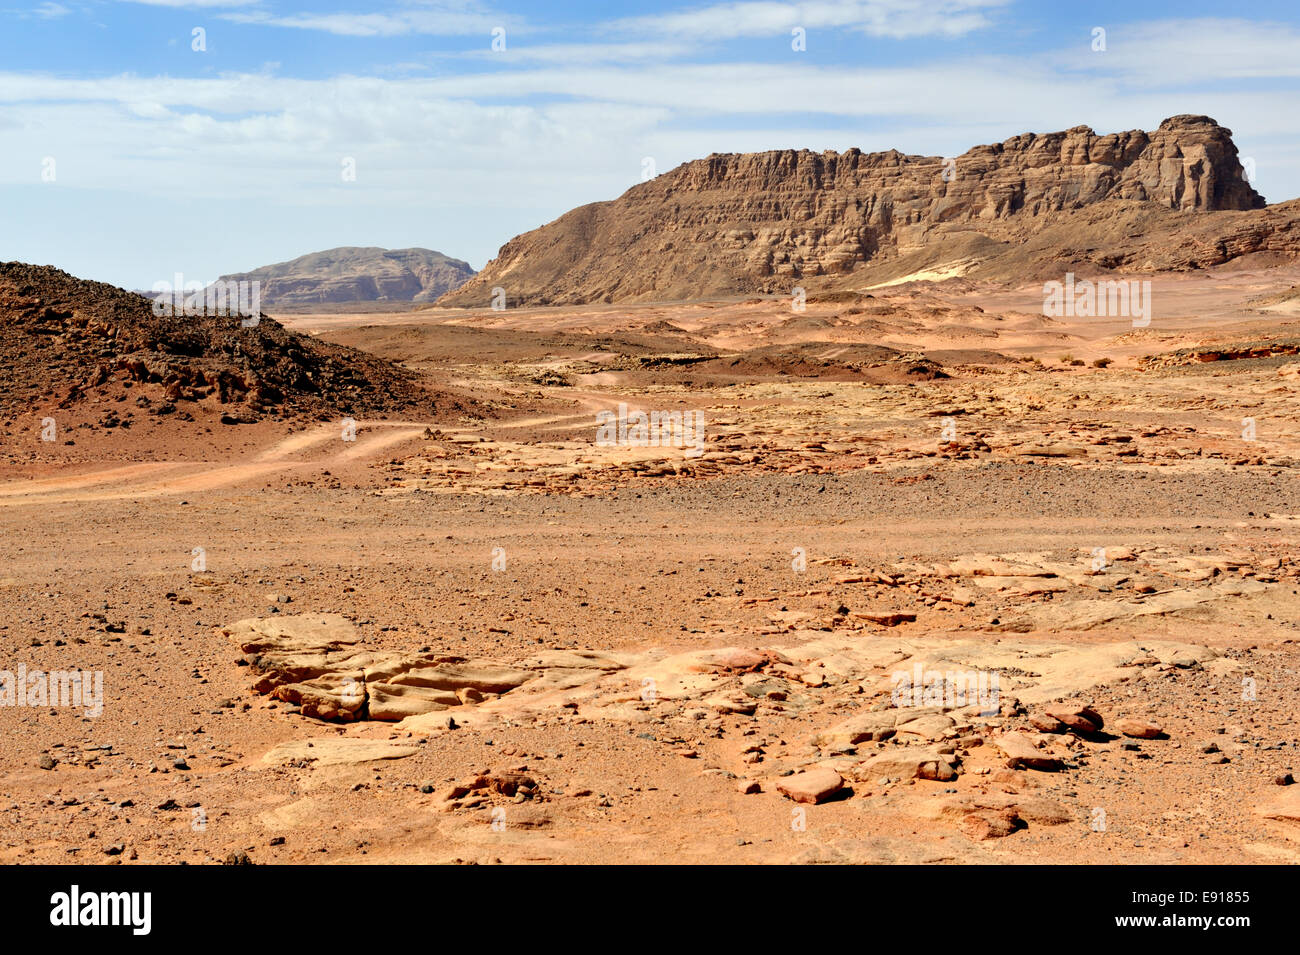 Desert landscape in South Sinai Peninsula between Dahab and Nuweiba, Egypt - Stock Image